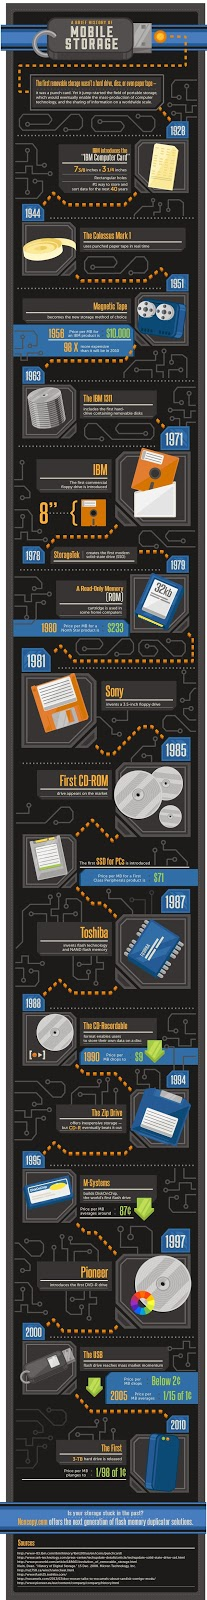 A brief history of mobile storage